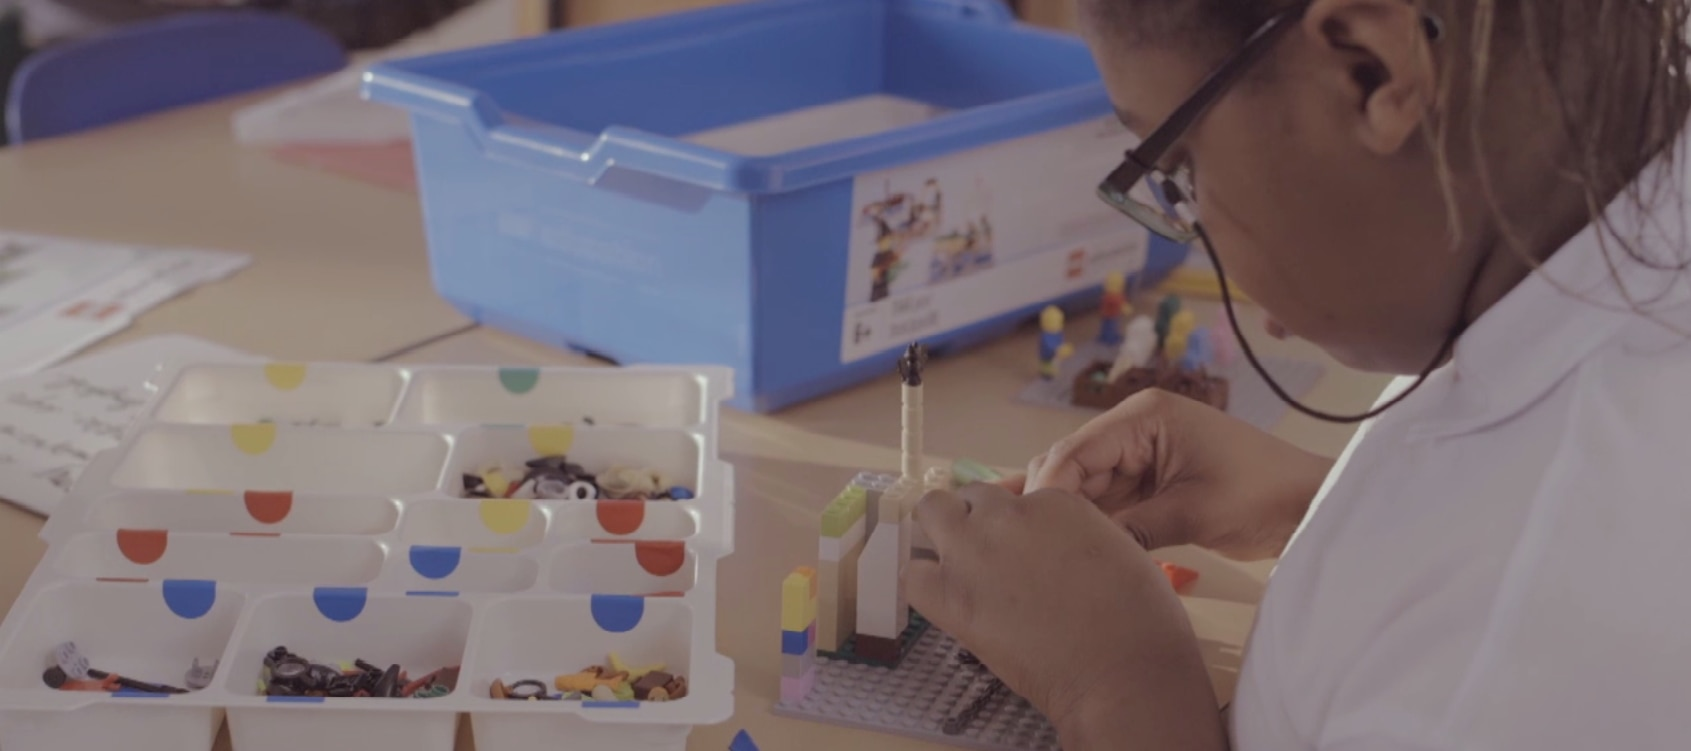 LEGO Education StoryStarter